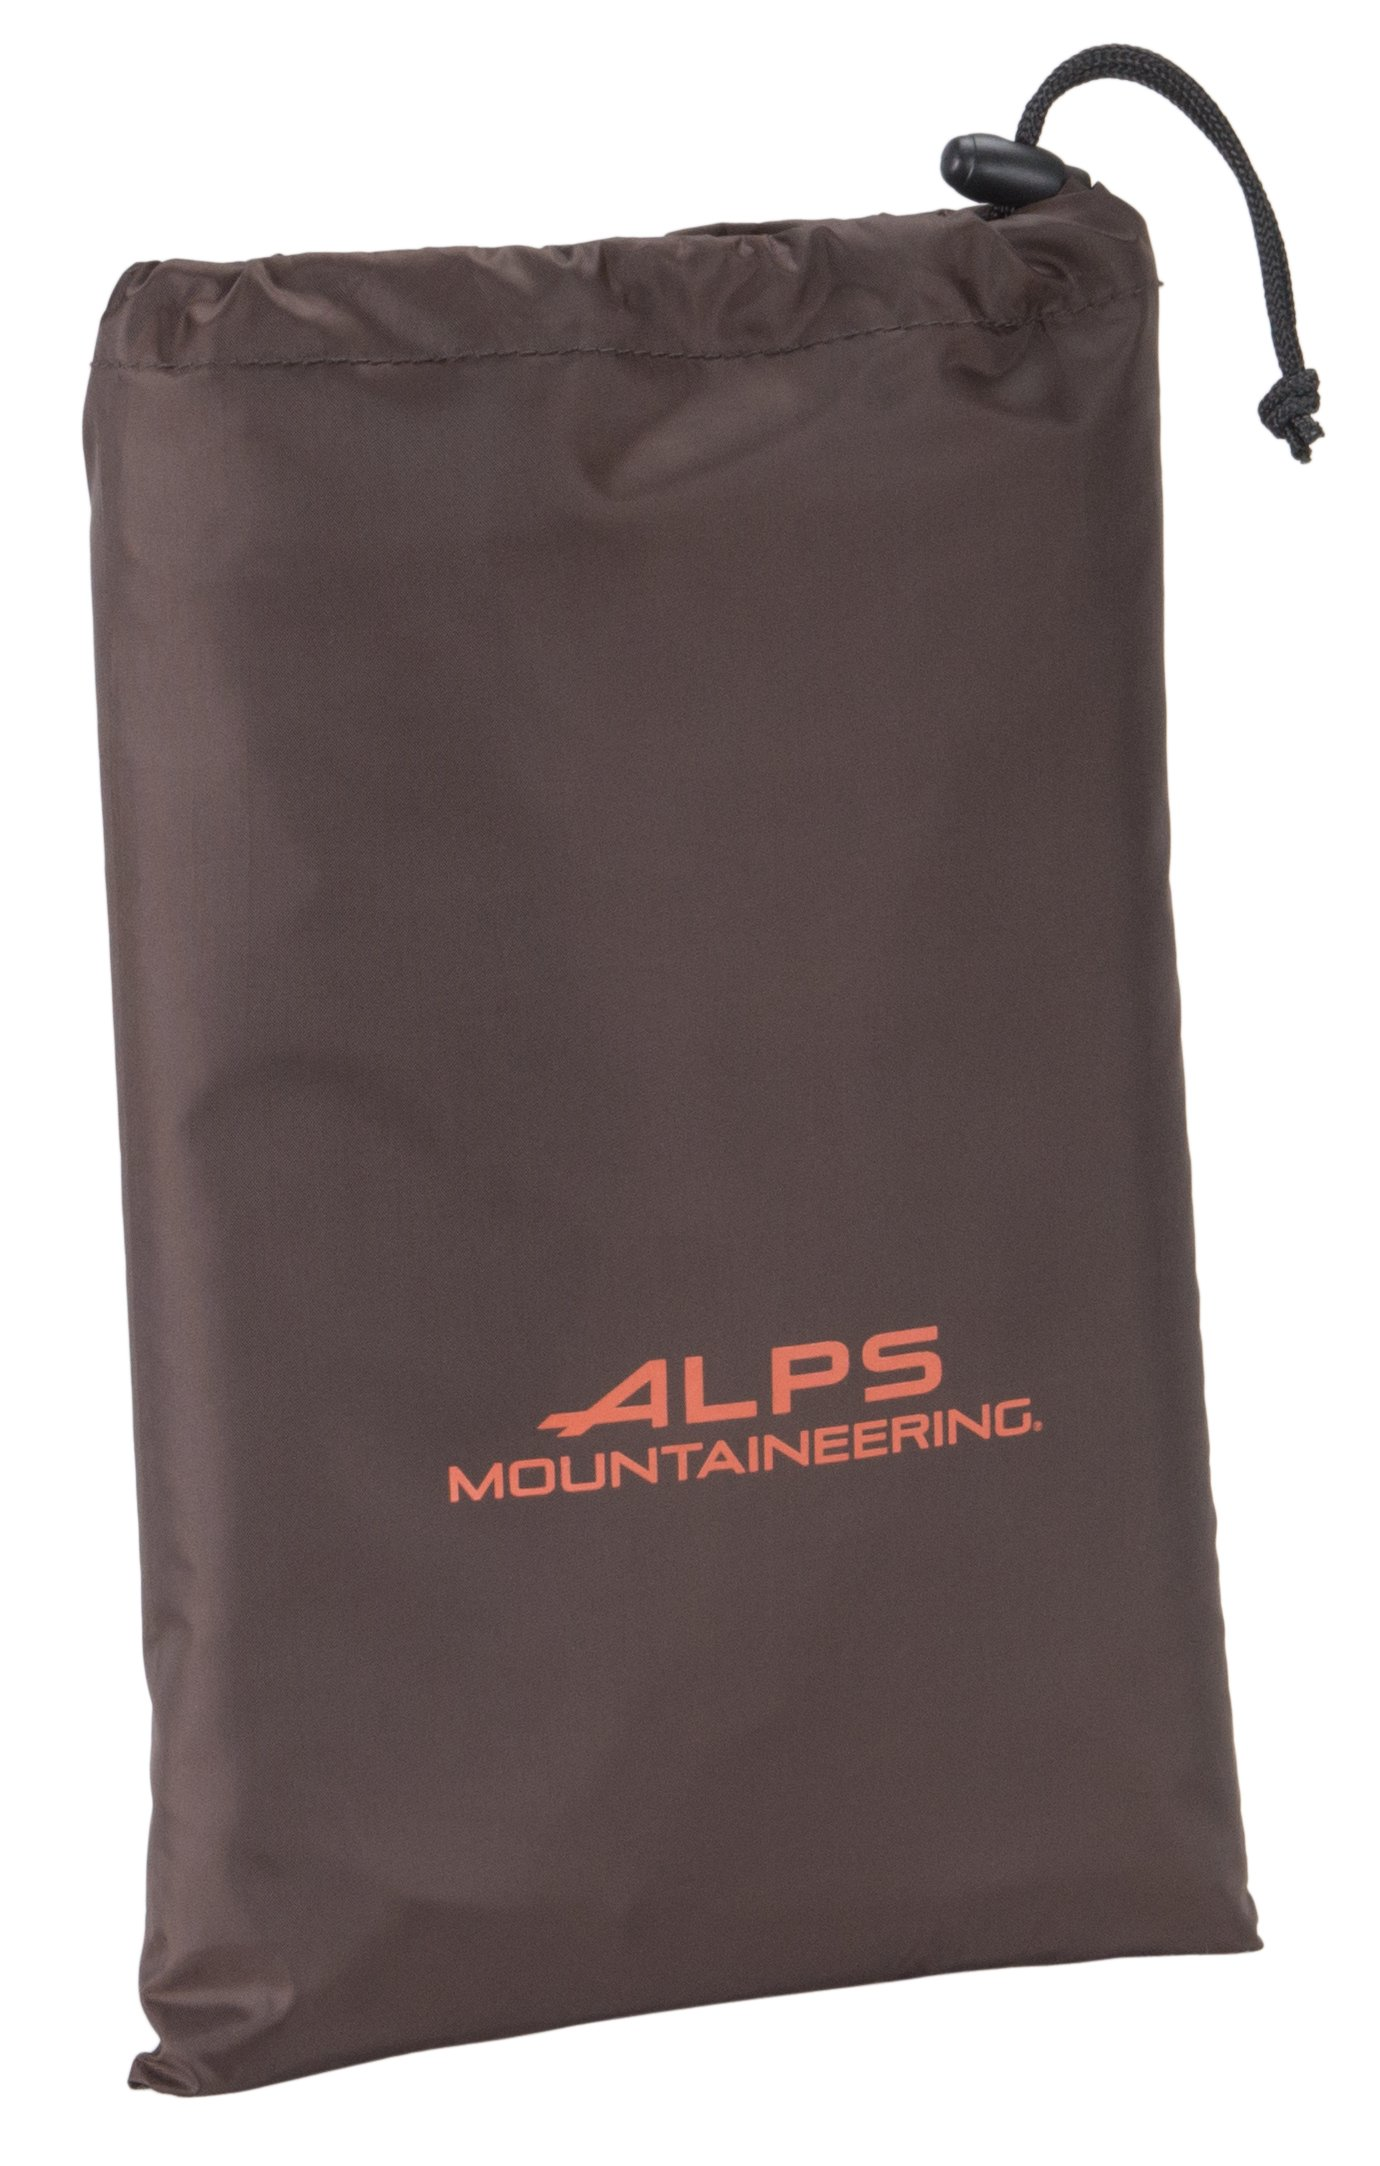 ALPS Mountaineering Extreme 3-Person Tent Floor Saver by ALPS Mountaineering